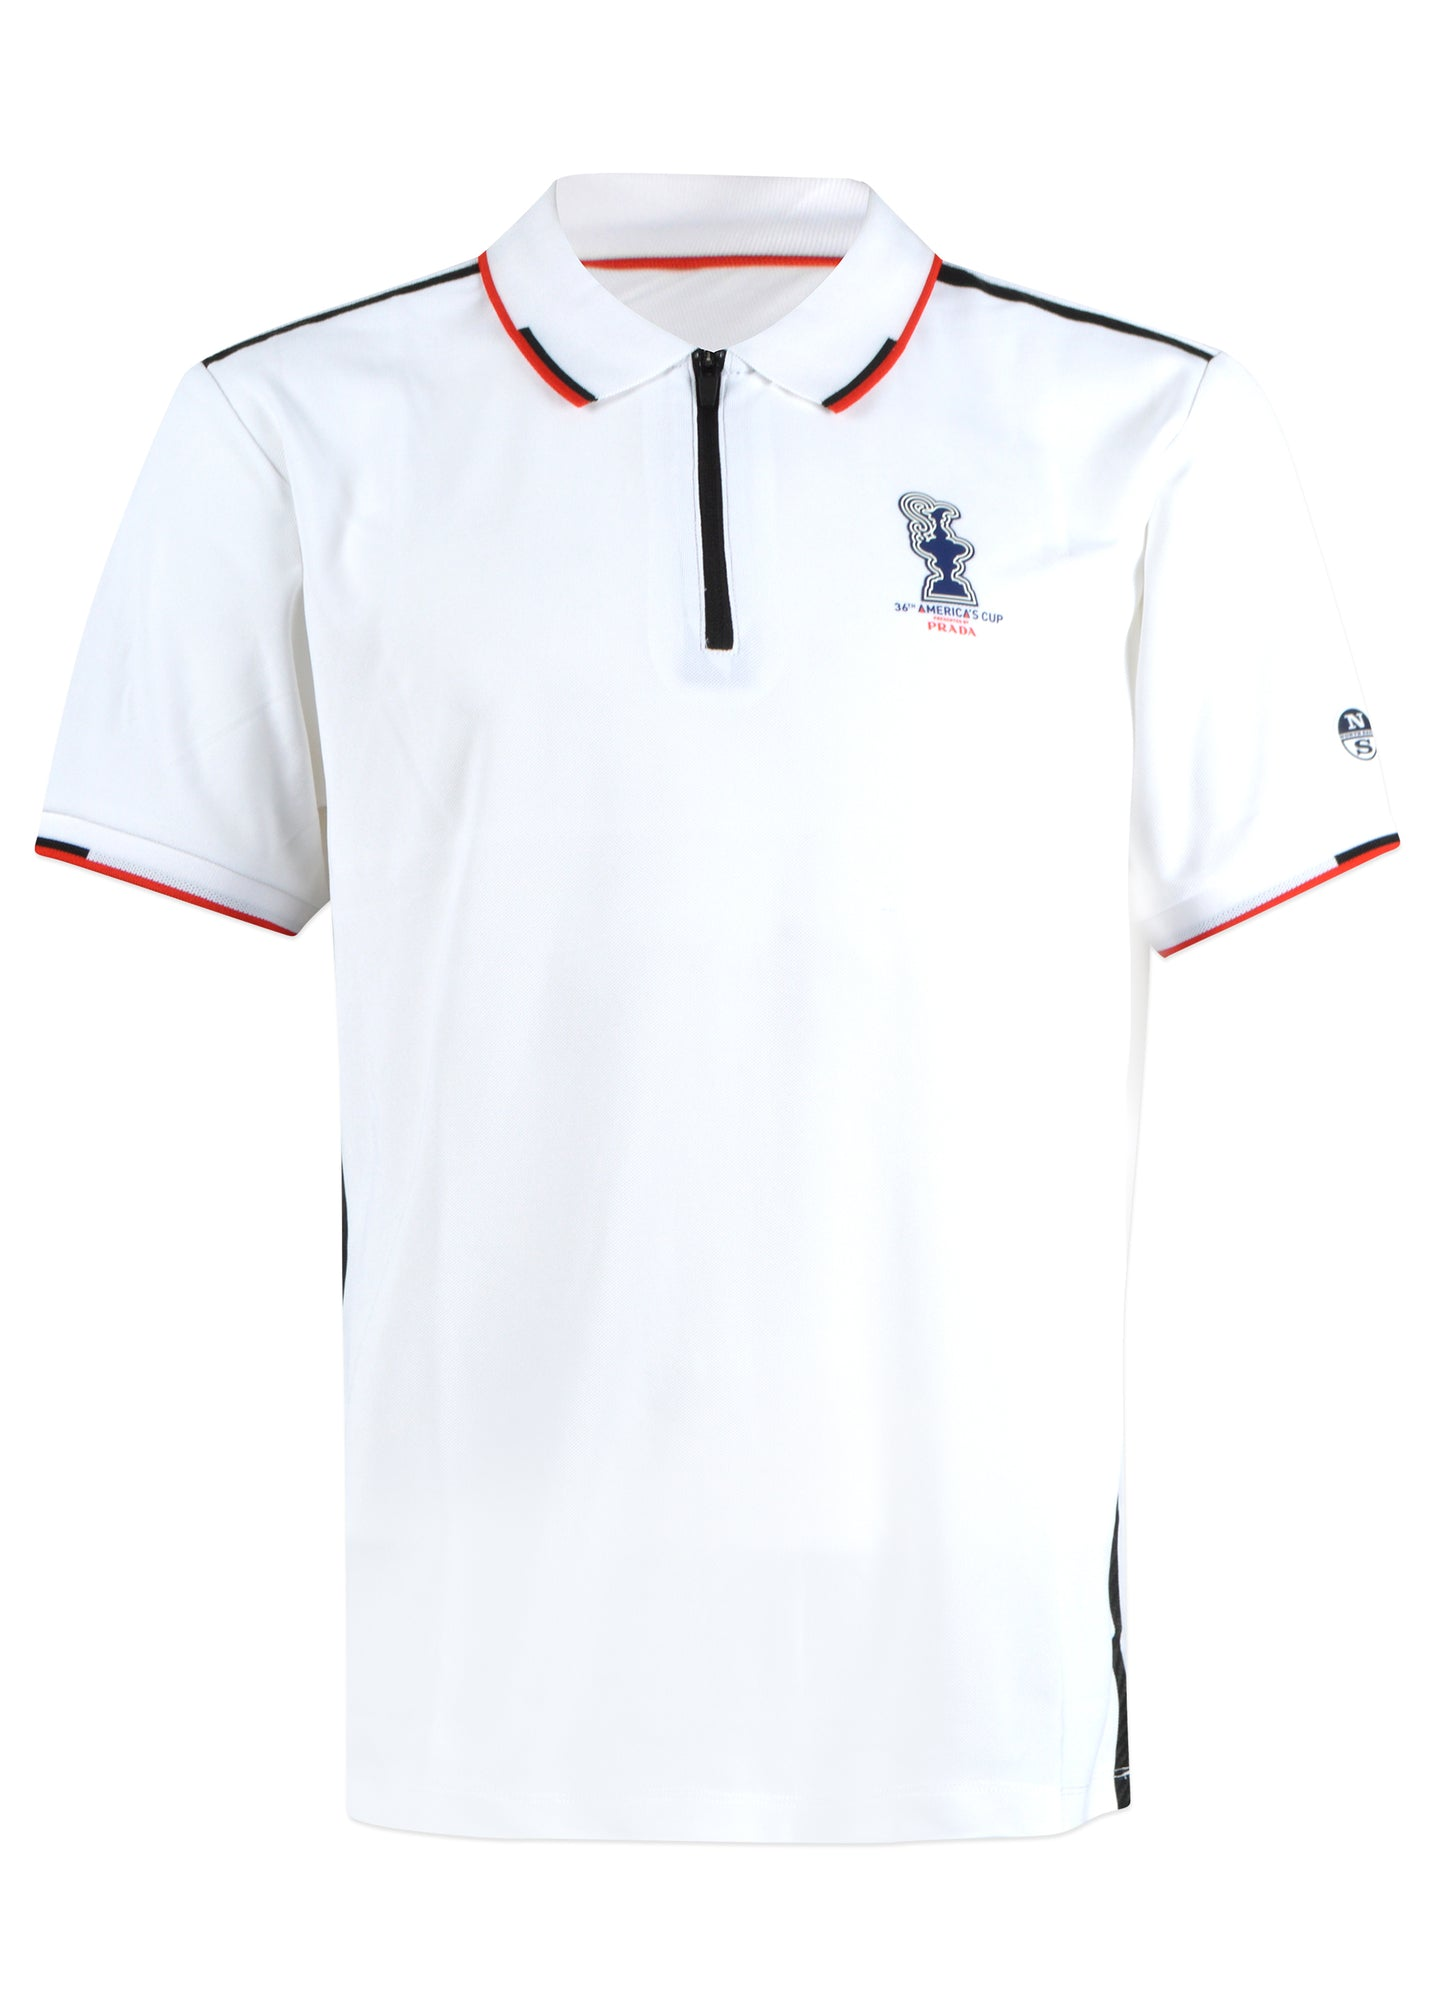 Prada X North Sails - Exclusive 36th America's Cup Zip Polo Shirt - 099541 - White